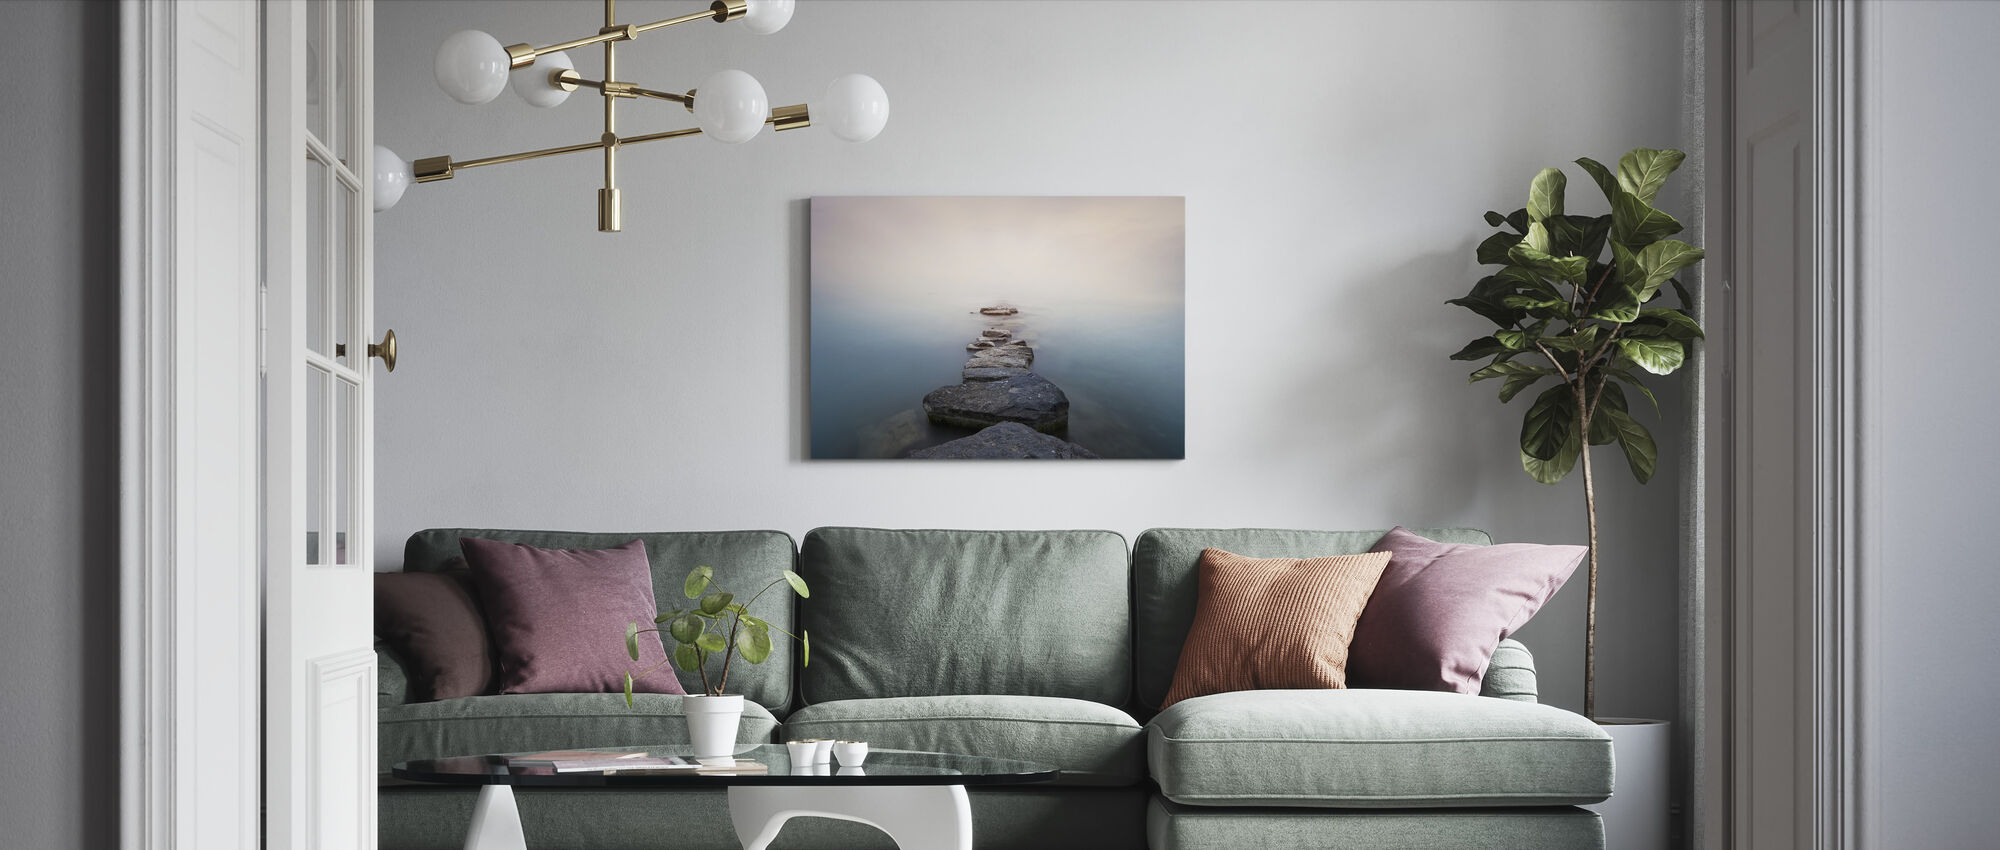 Stones - Canvas print - Living Room